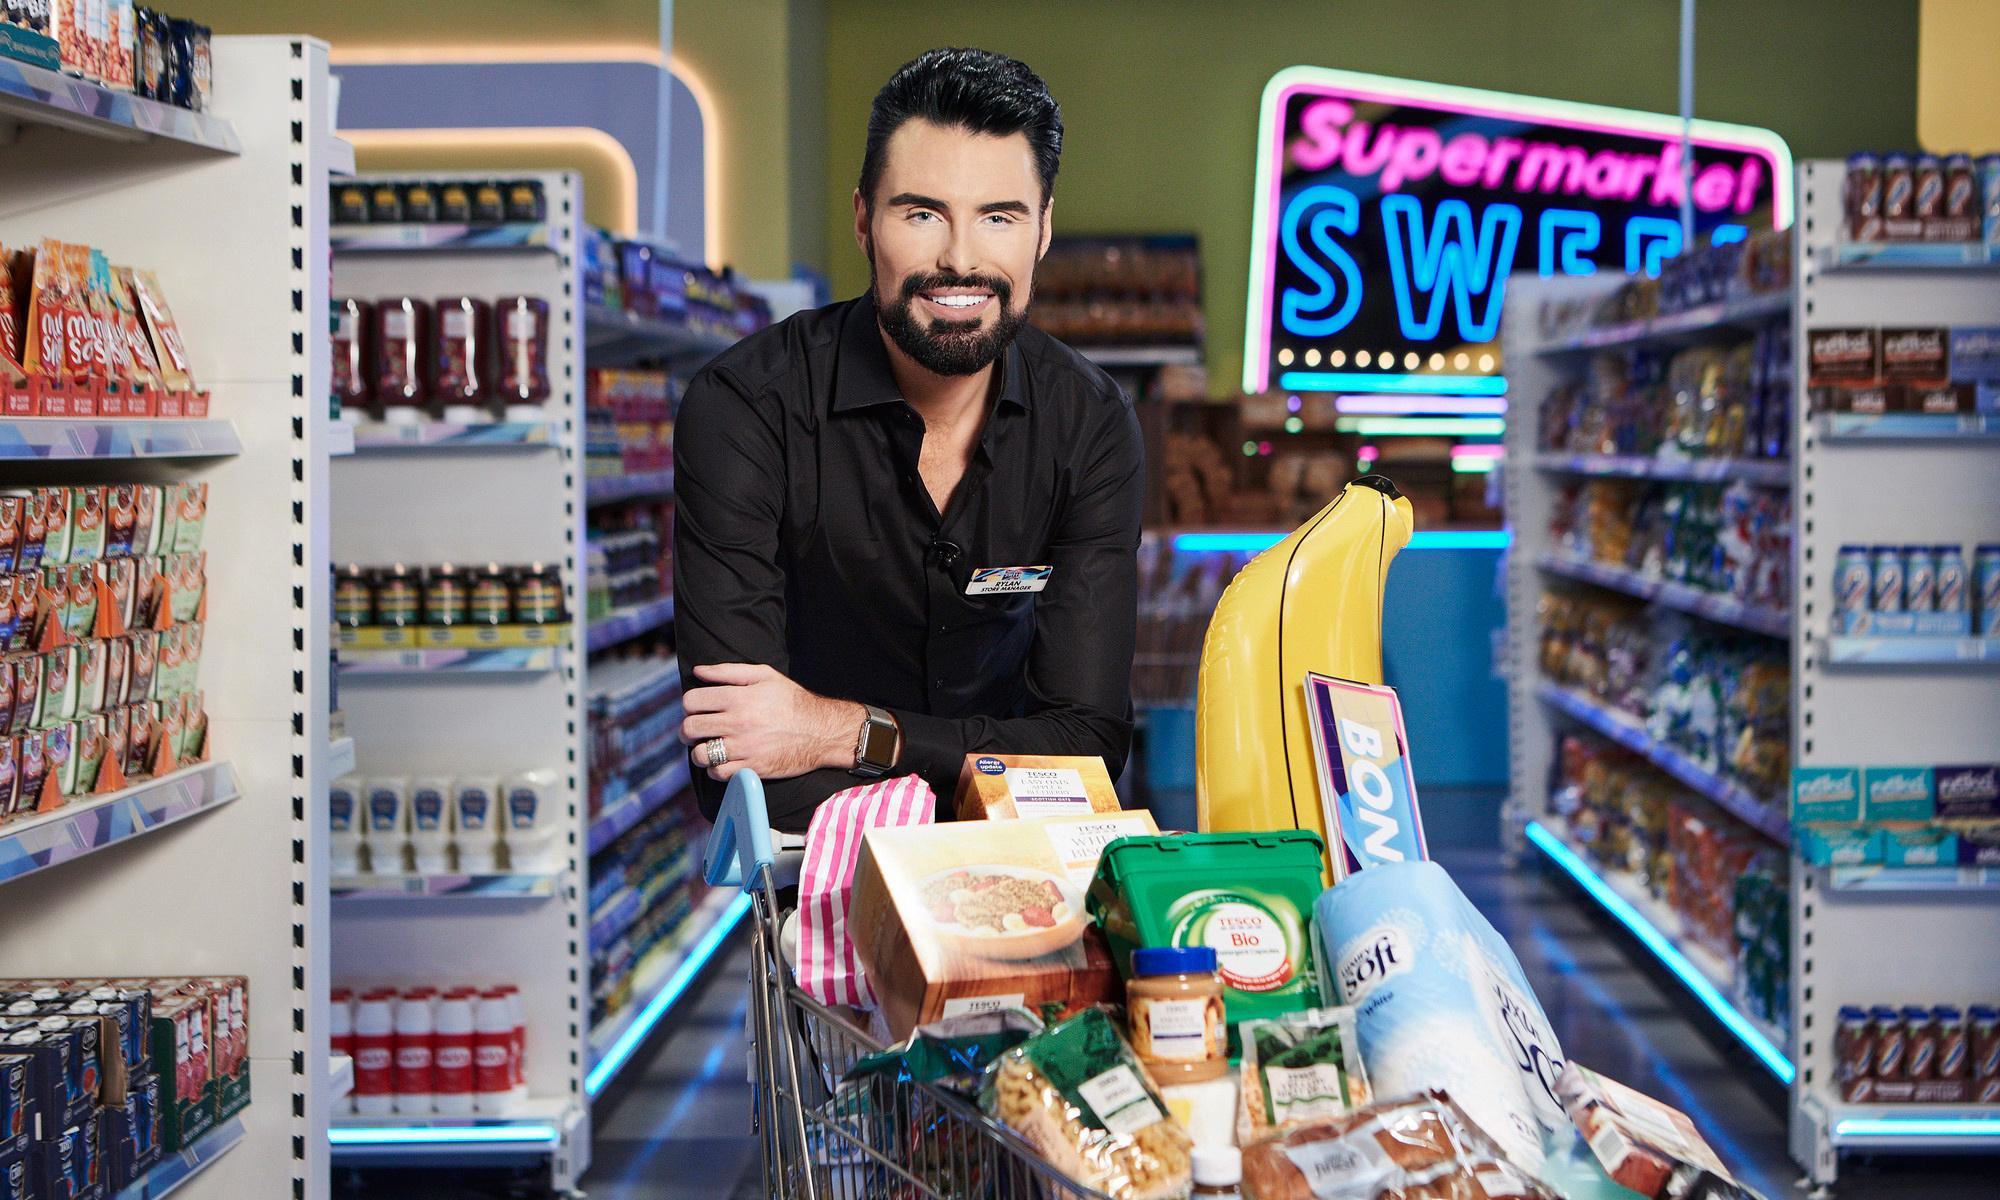 TV tonight: Rylan goes wild in the aisles on Supermarket Sweep